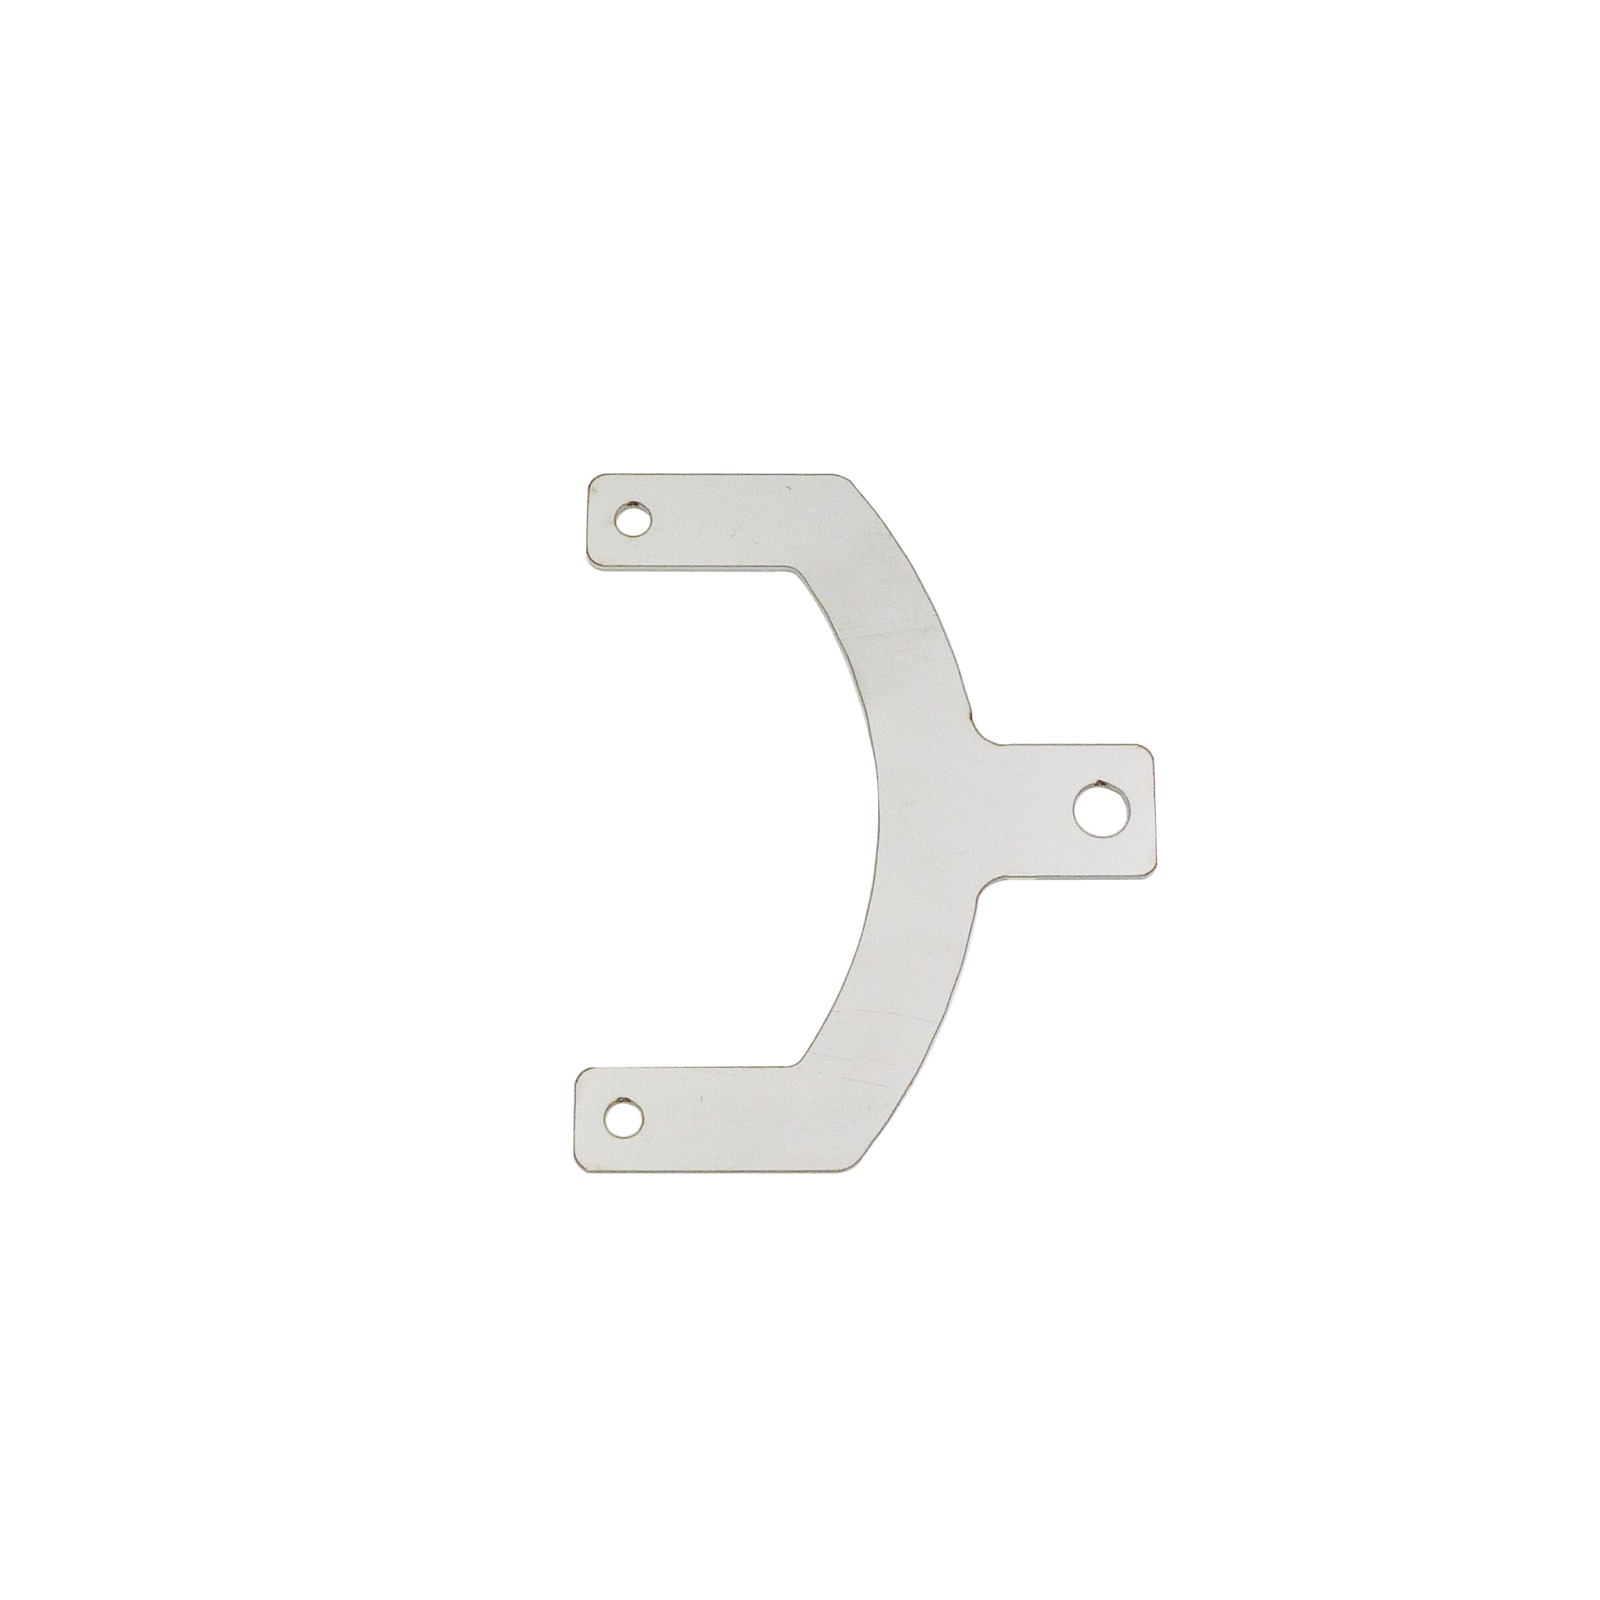 KST-BKT-04 mounting bracket for linear actu0ator -  (1)